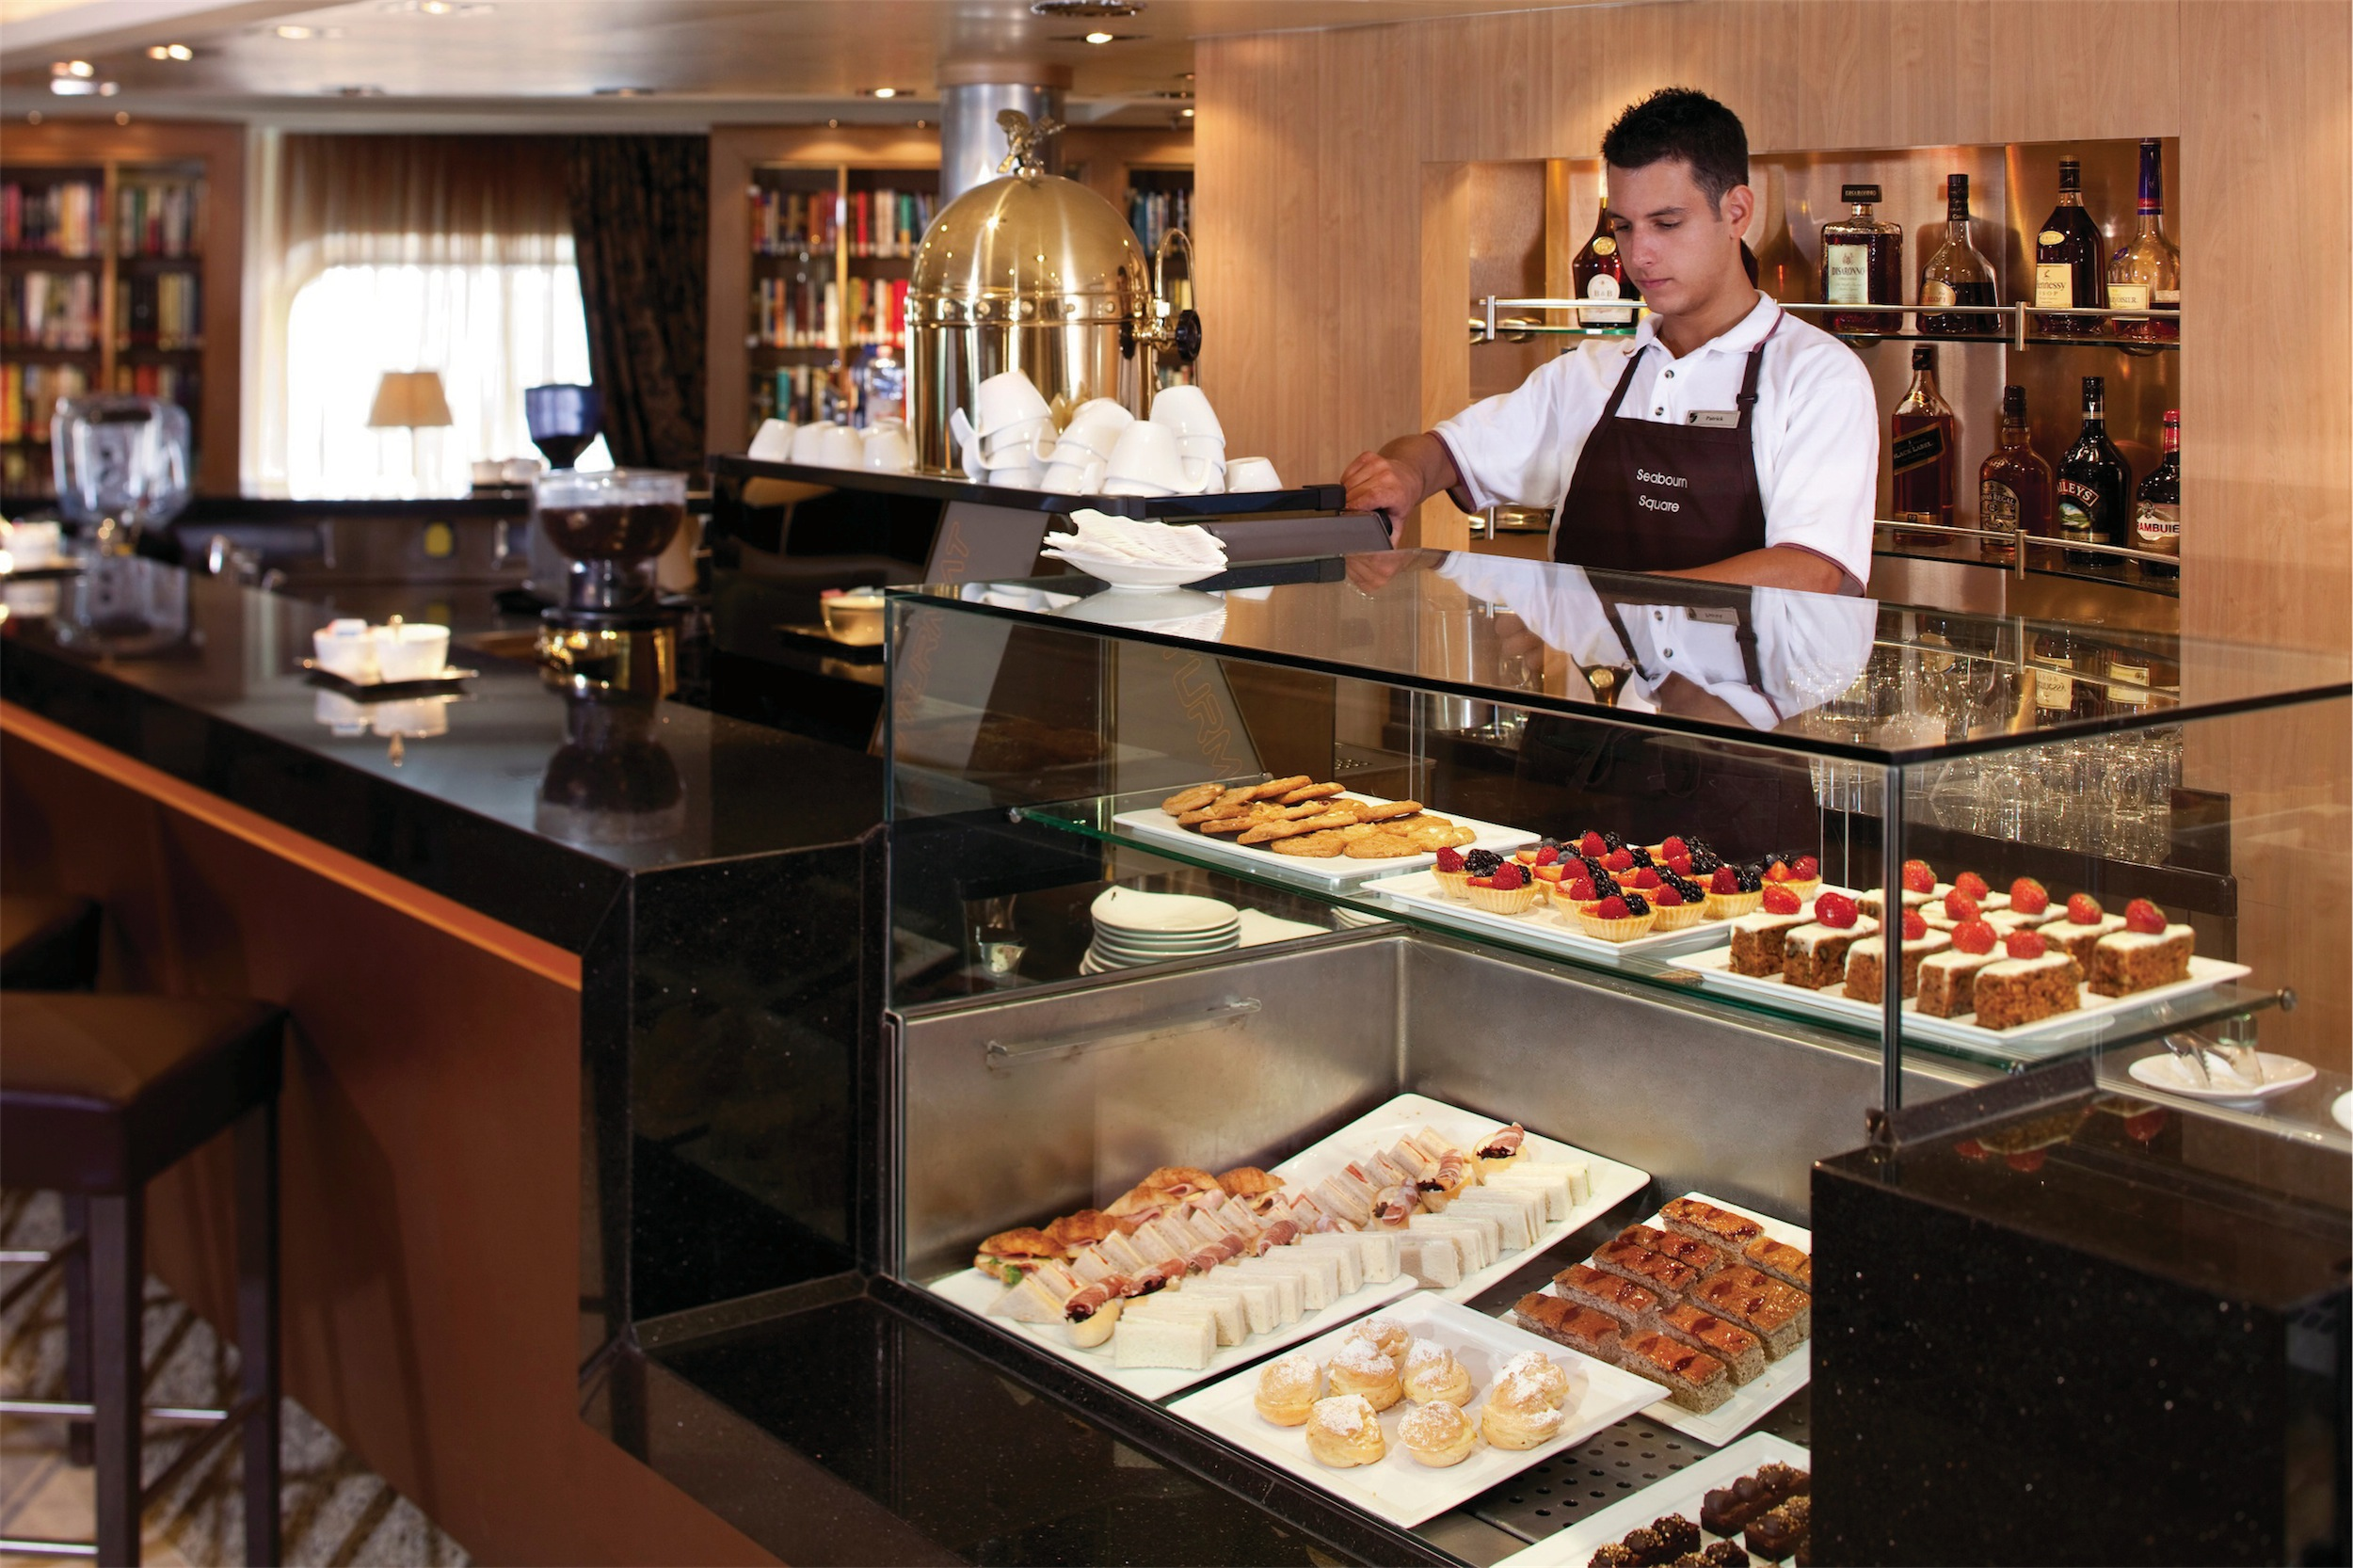 Seabourn Odyssey Class Interior Coffee Bar 1.jpg